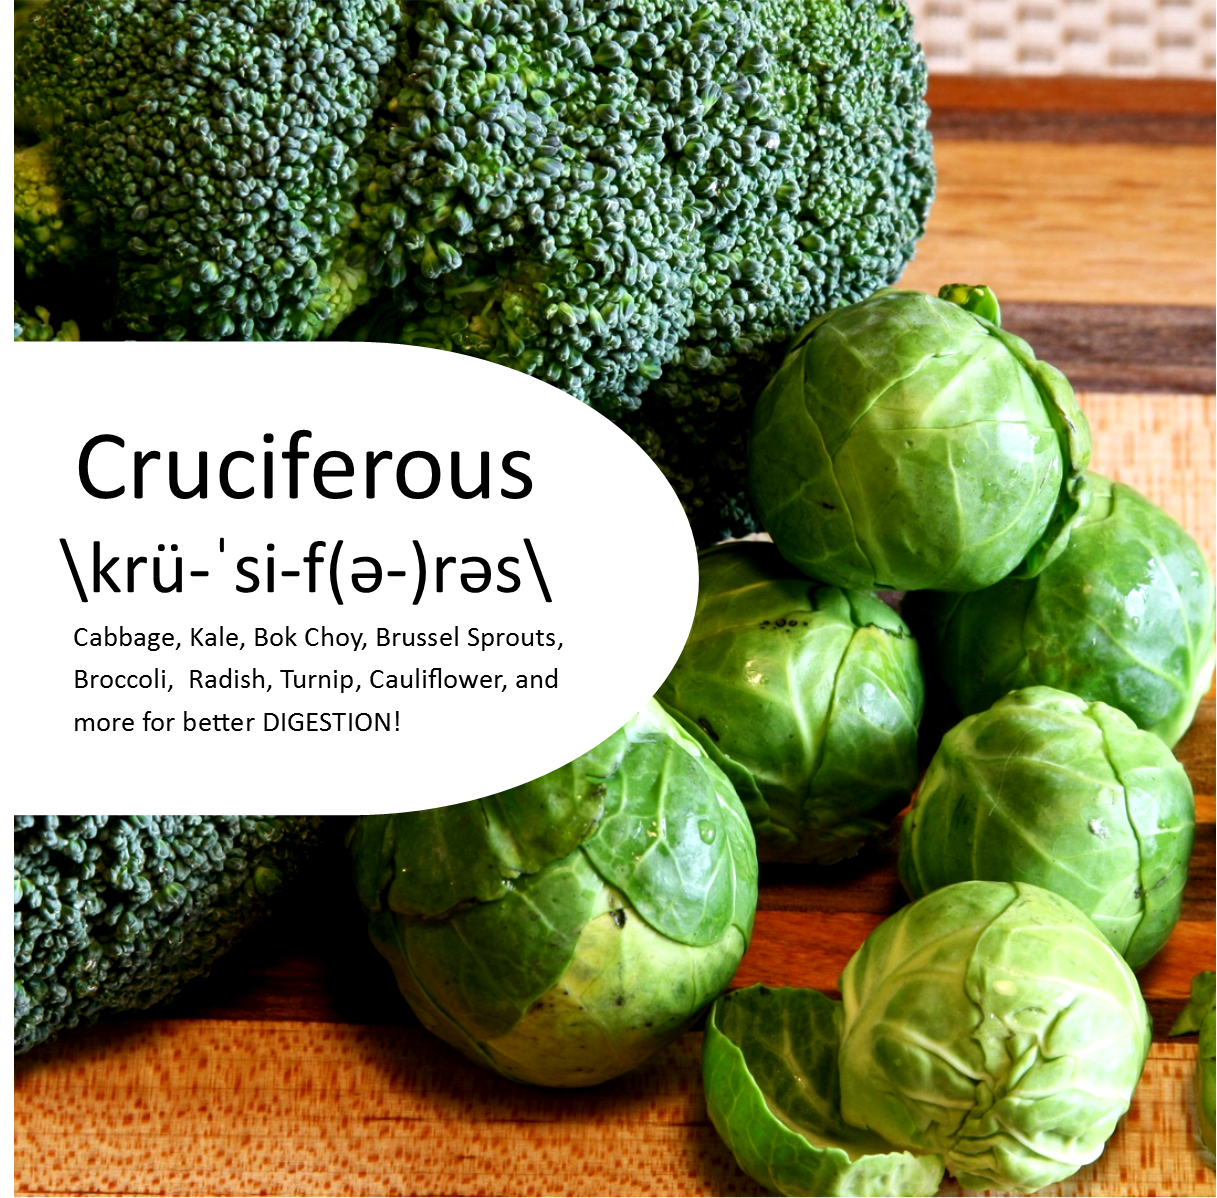 Yes, there is a Fresh Veggies Day…and it's today! Since we're riding the digestive train, let's keep going full steam ahead. Your gut does a lot of work to get you the best return for your healthy eating efforts. Fuel it with the gut loving family of veggies, called cruciferous \krü-ˈsi-f(ə-)rəs\. Containing high amounts of glutamine, vegetables like cabbage, brussel sprouts, broccoli, kale, cauliflower, and bok choy, are complete powerhouses for your gut.